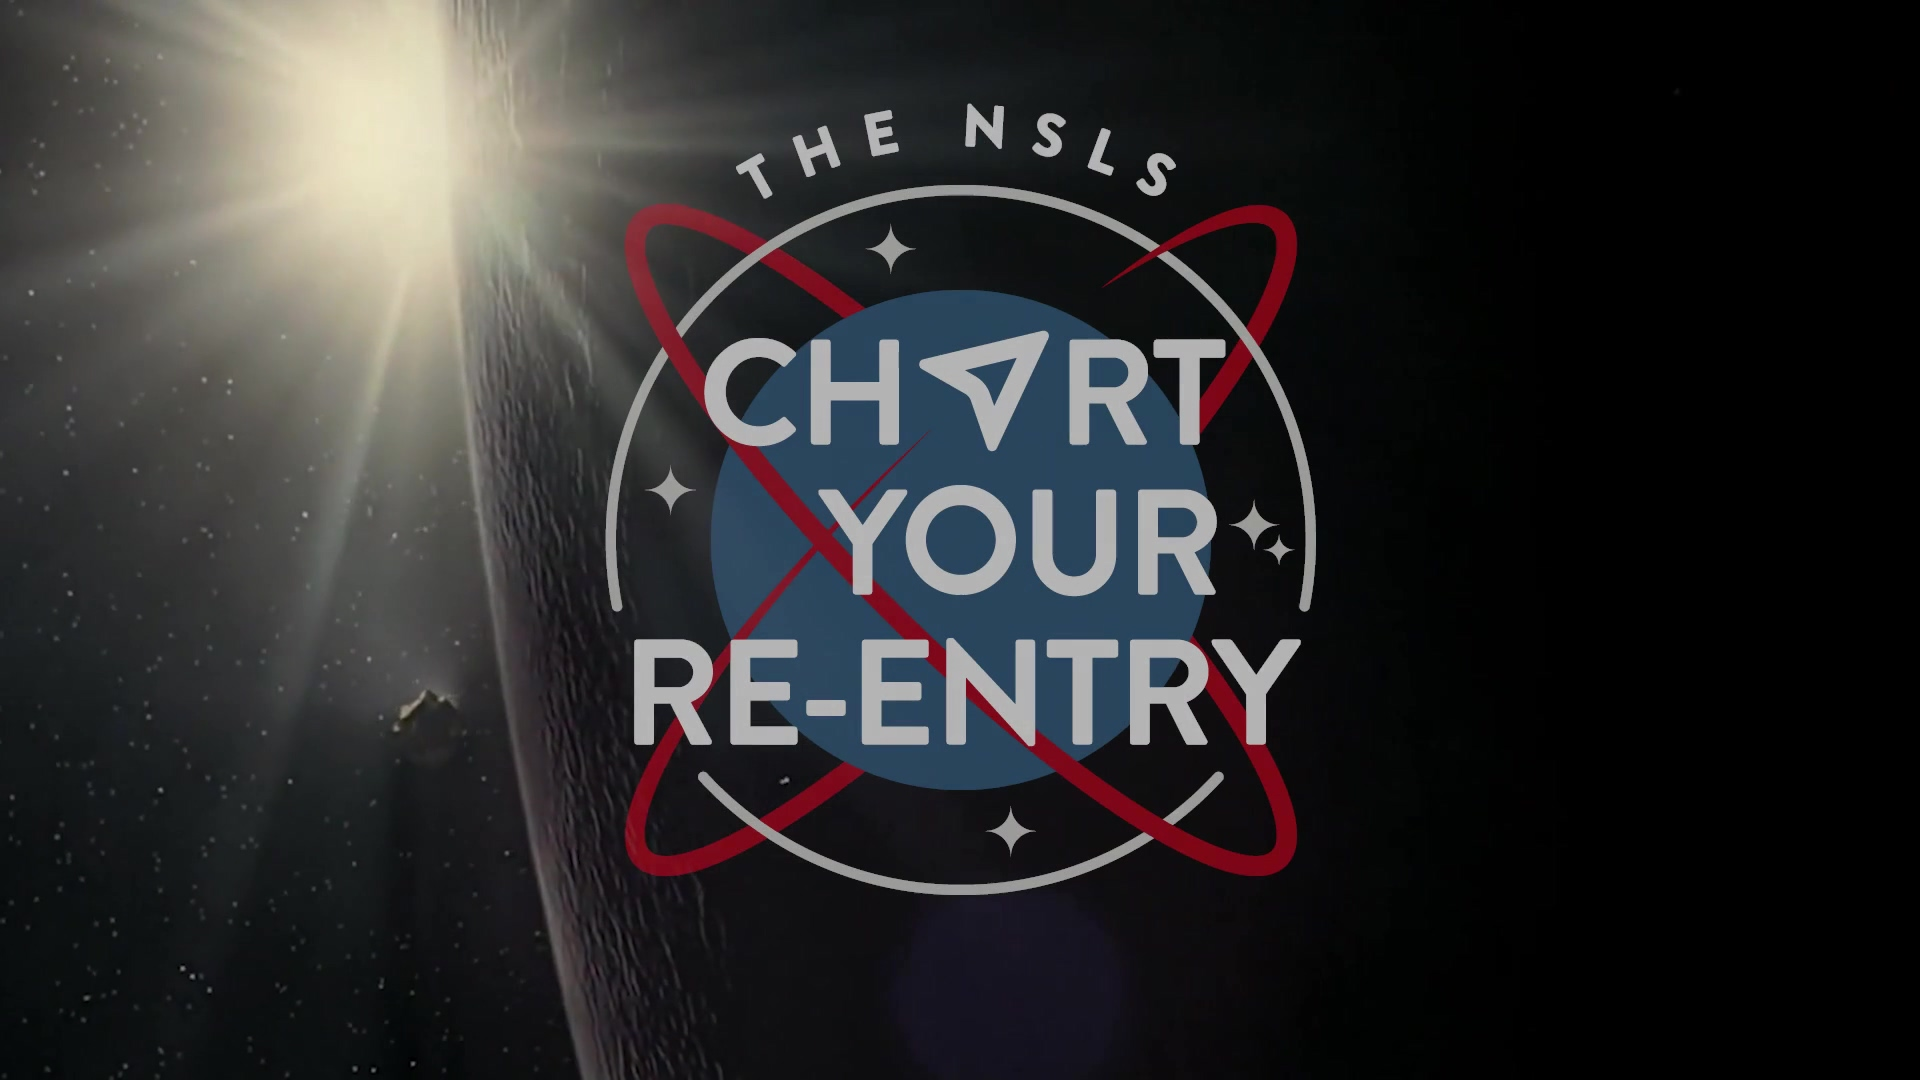 Chart Your Re-Entry